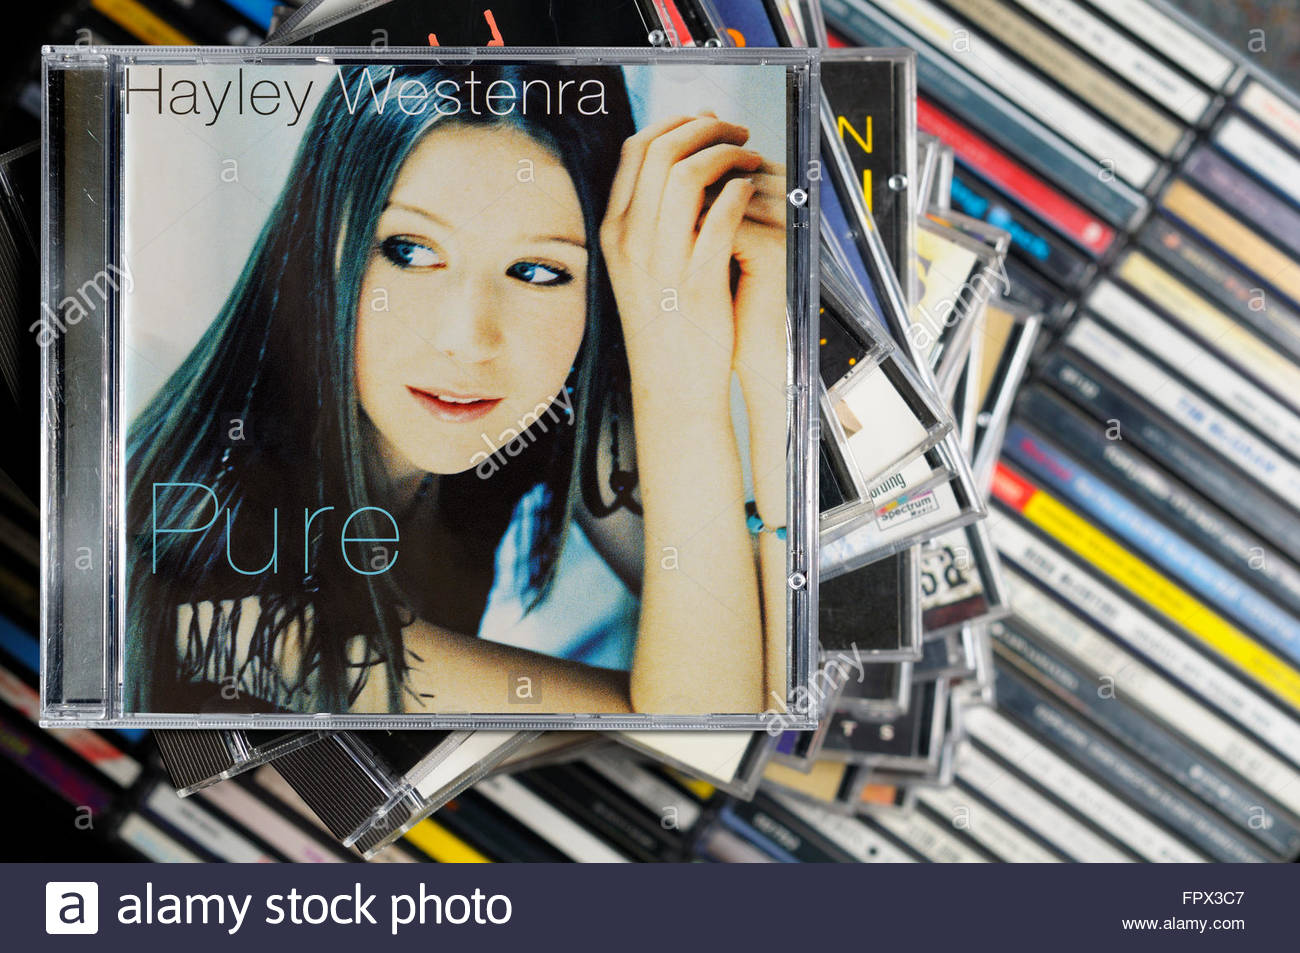 hayley westenra pure download